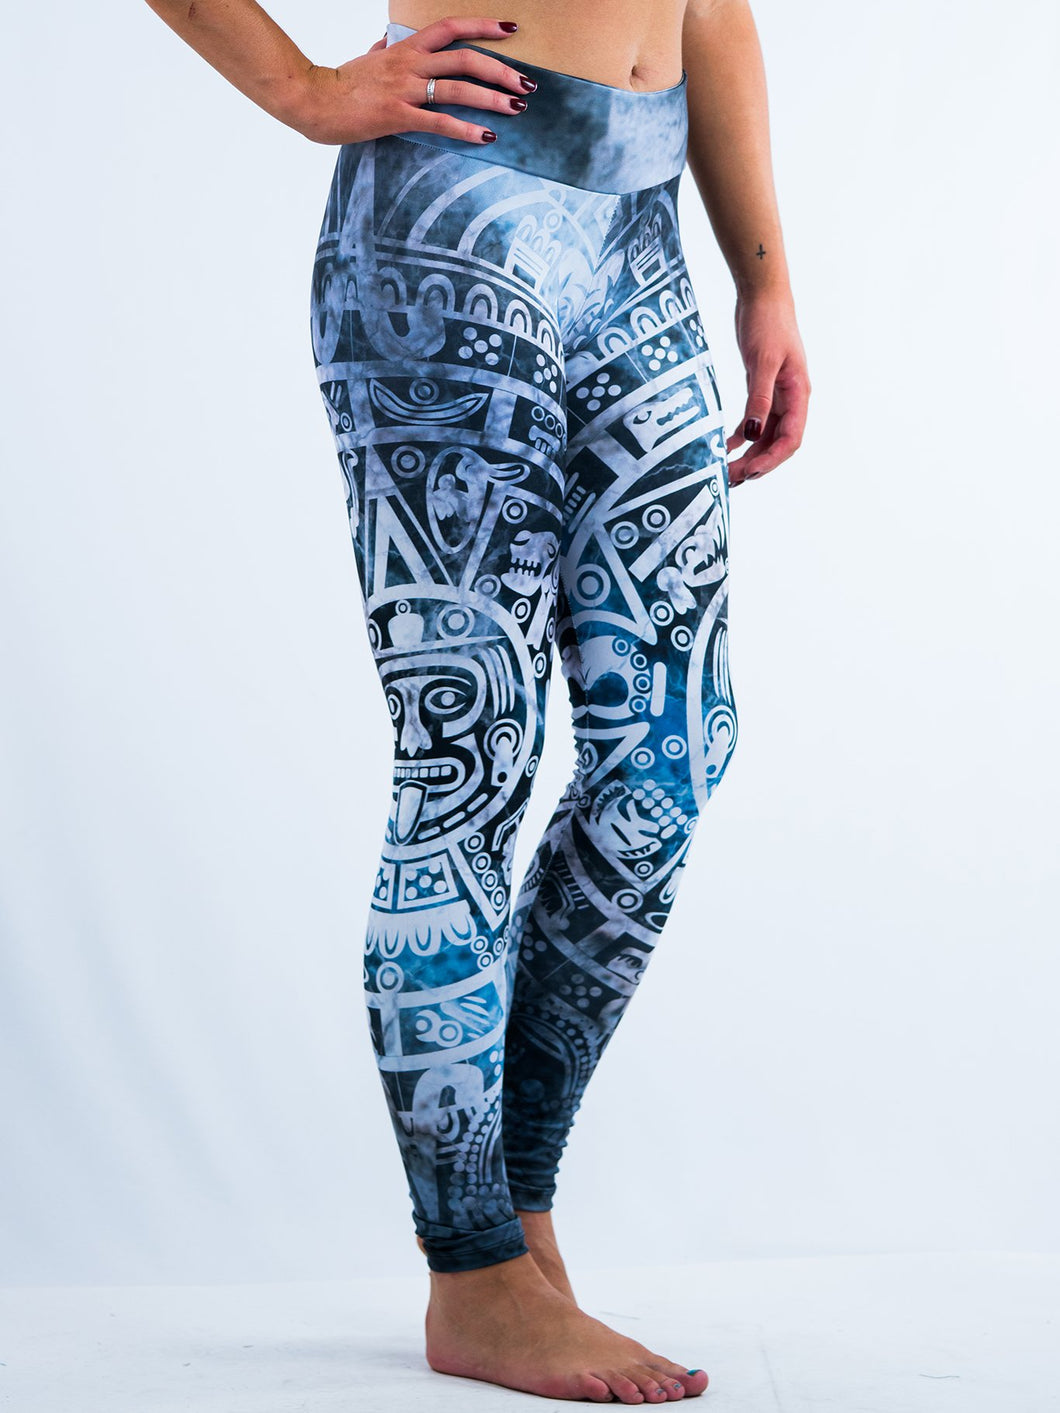 Inspiring Totemism Design Leggings